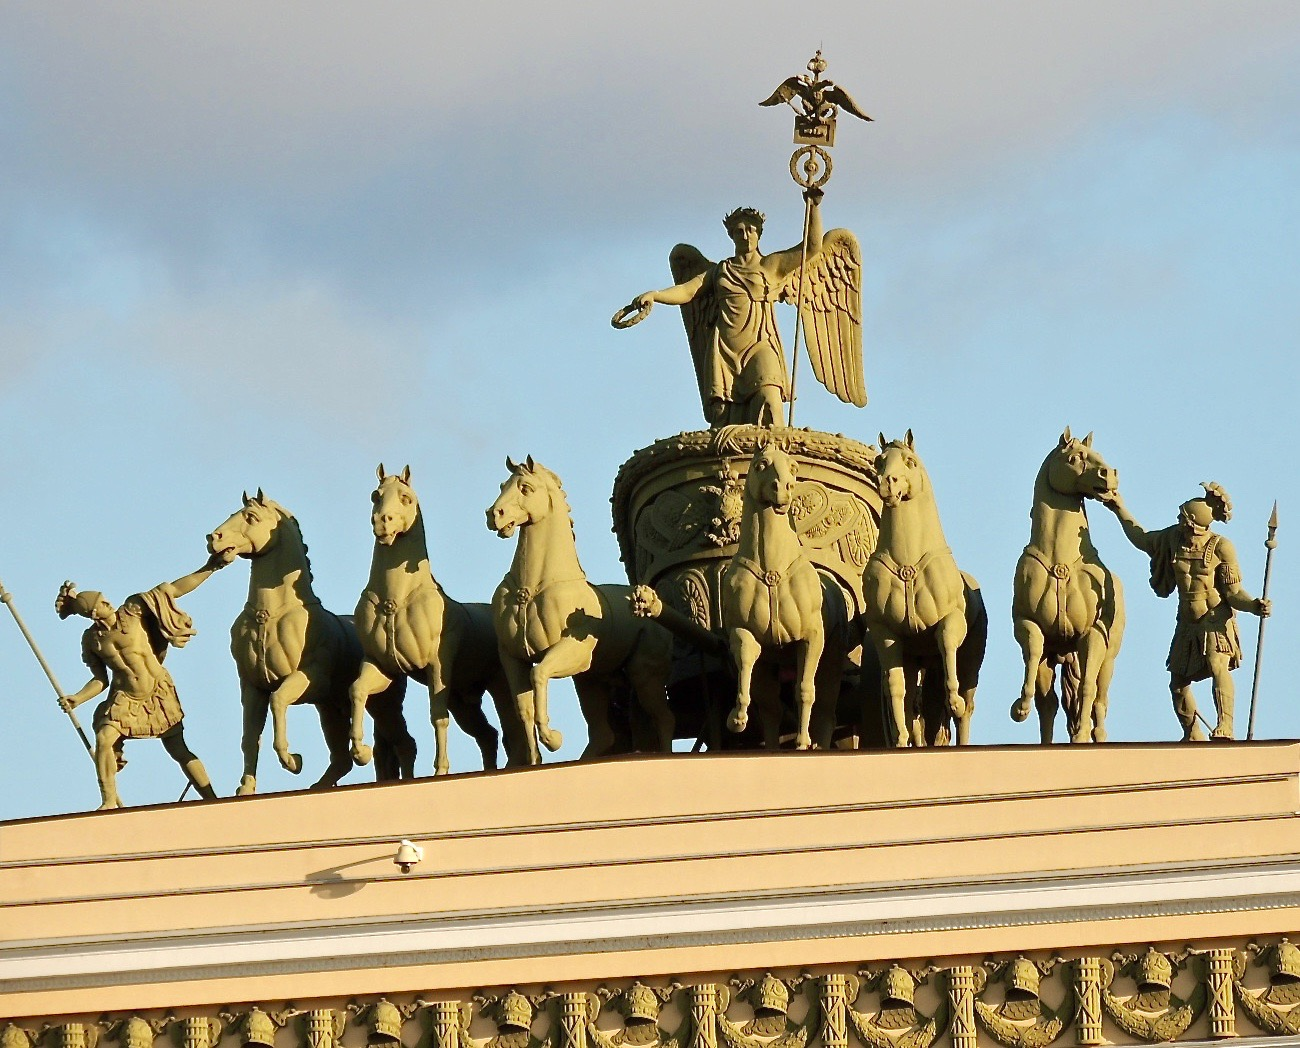 The Victory Chariot statue to commemorate Russia's triumph over Napoleon.